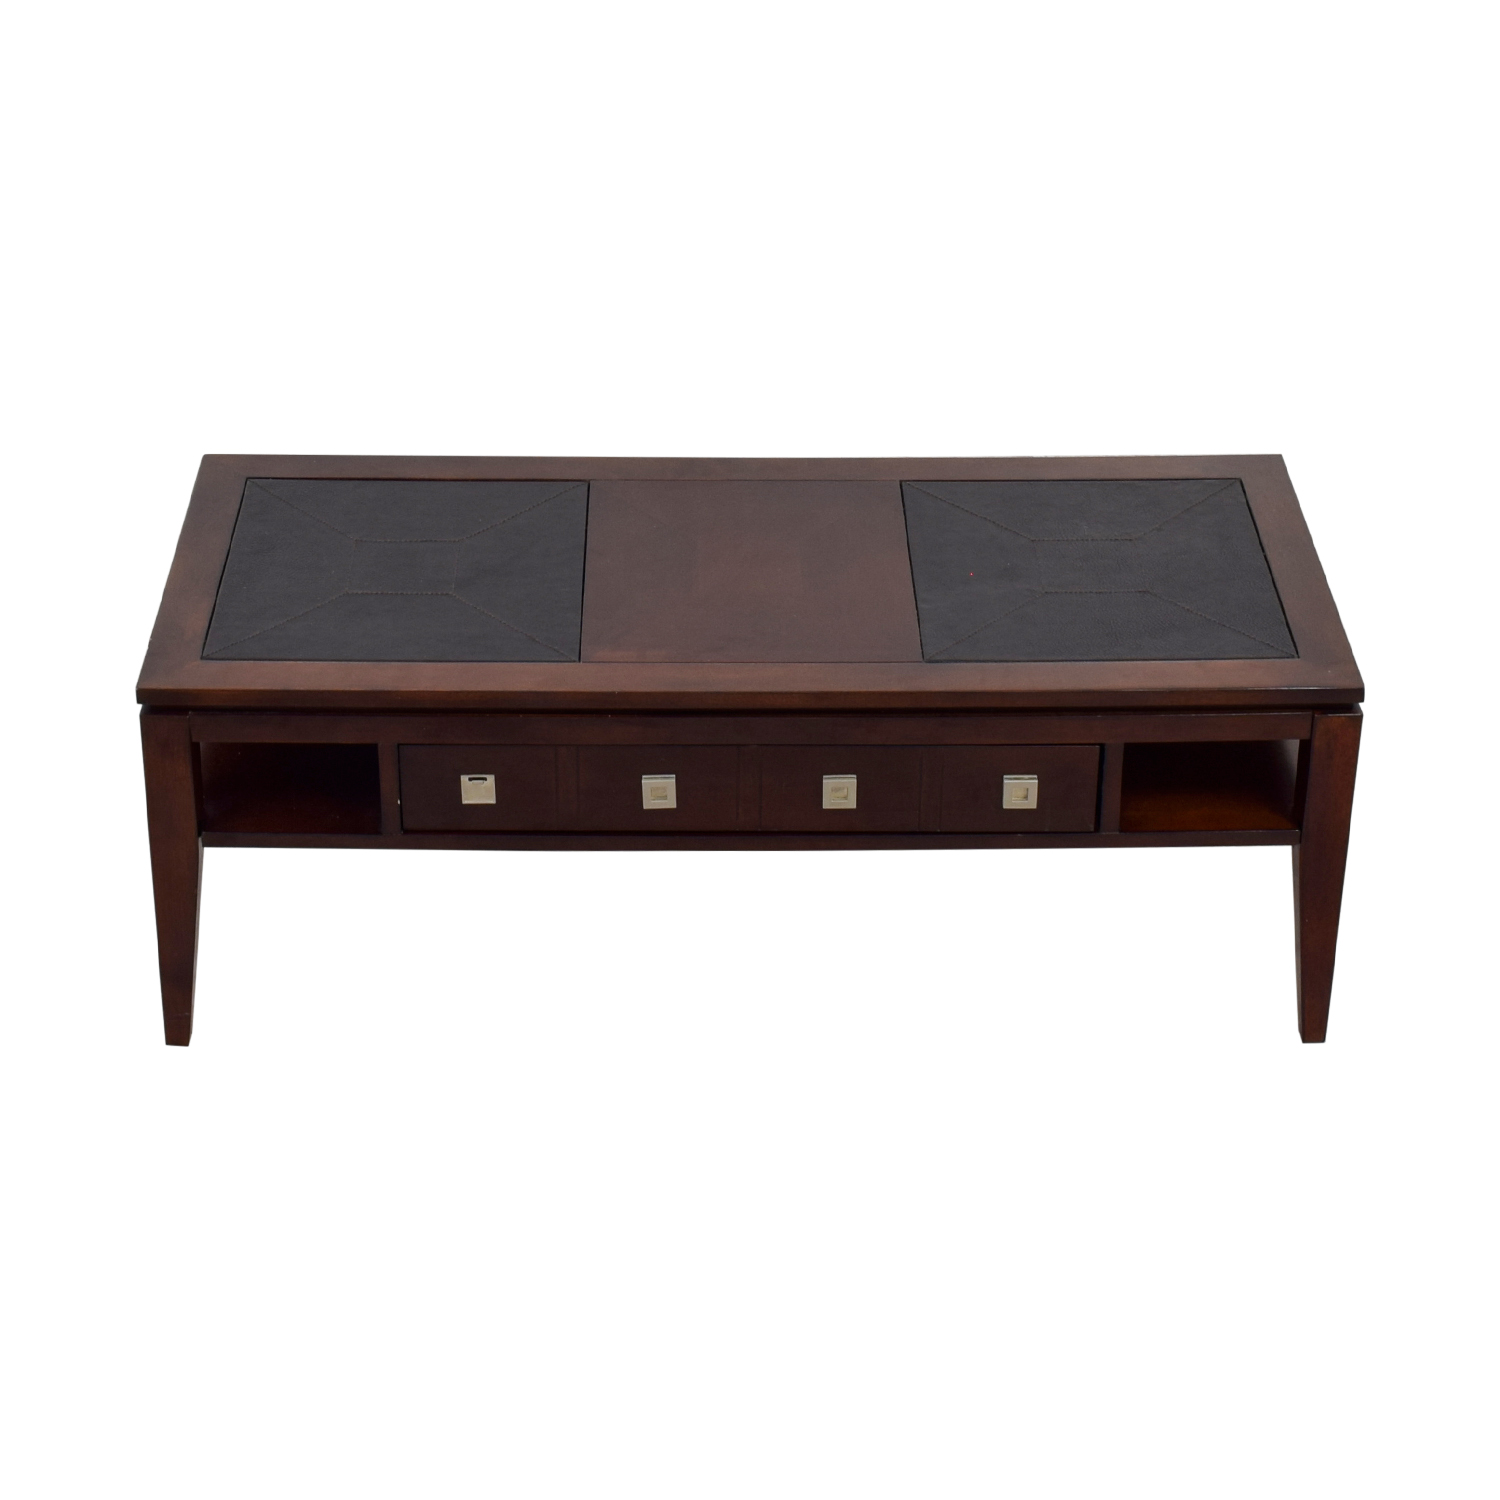 Raymour & Flanigan Raymour & Flanigan Single Drawer Coffee Table Used